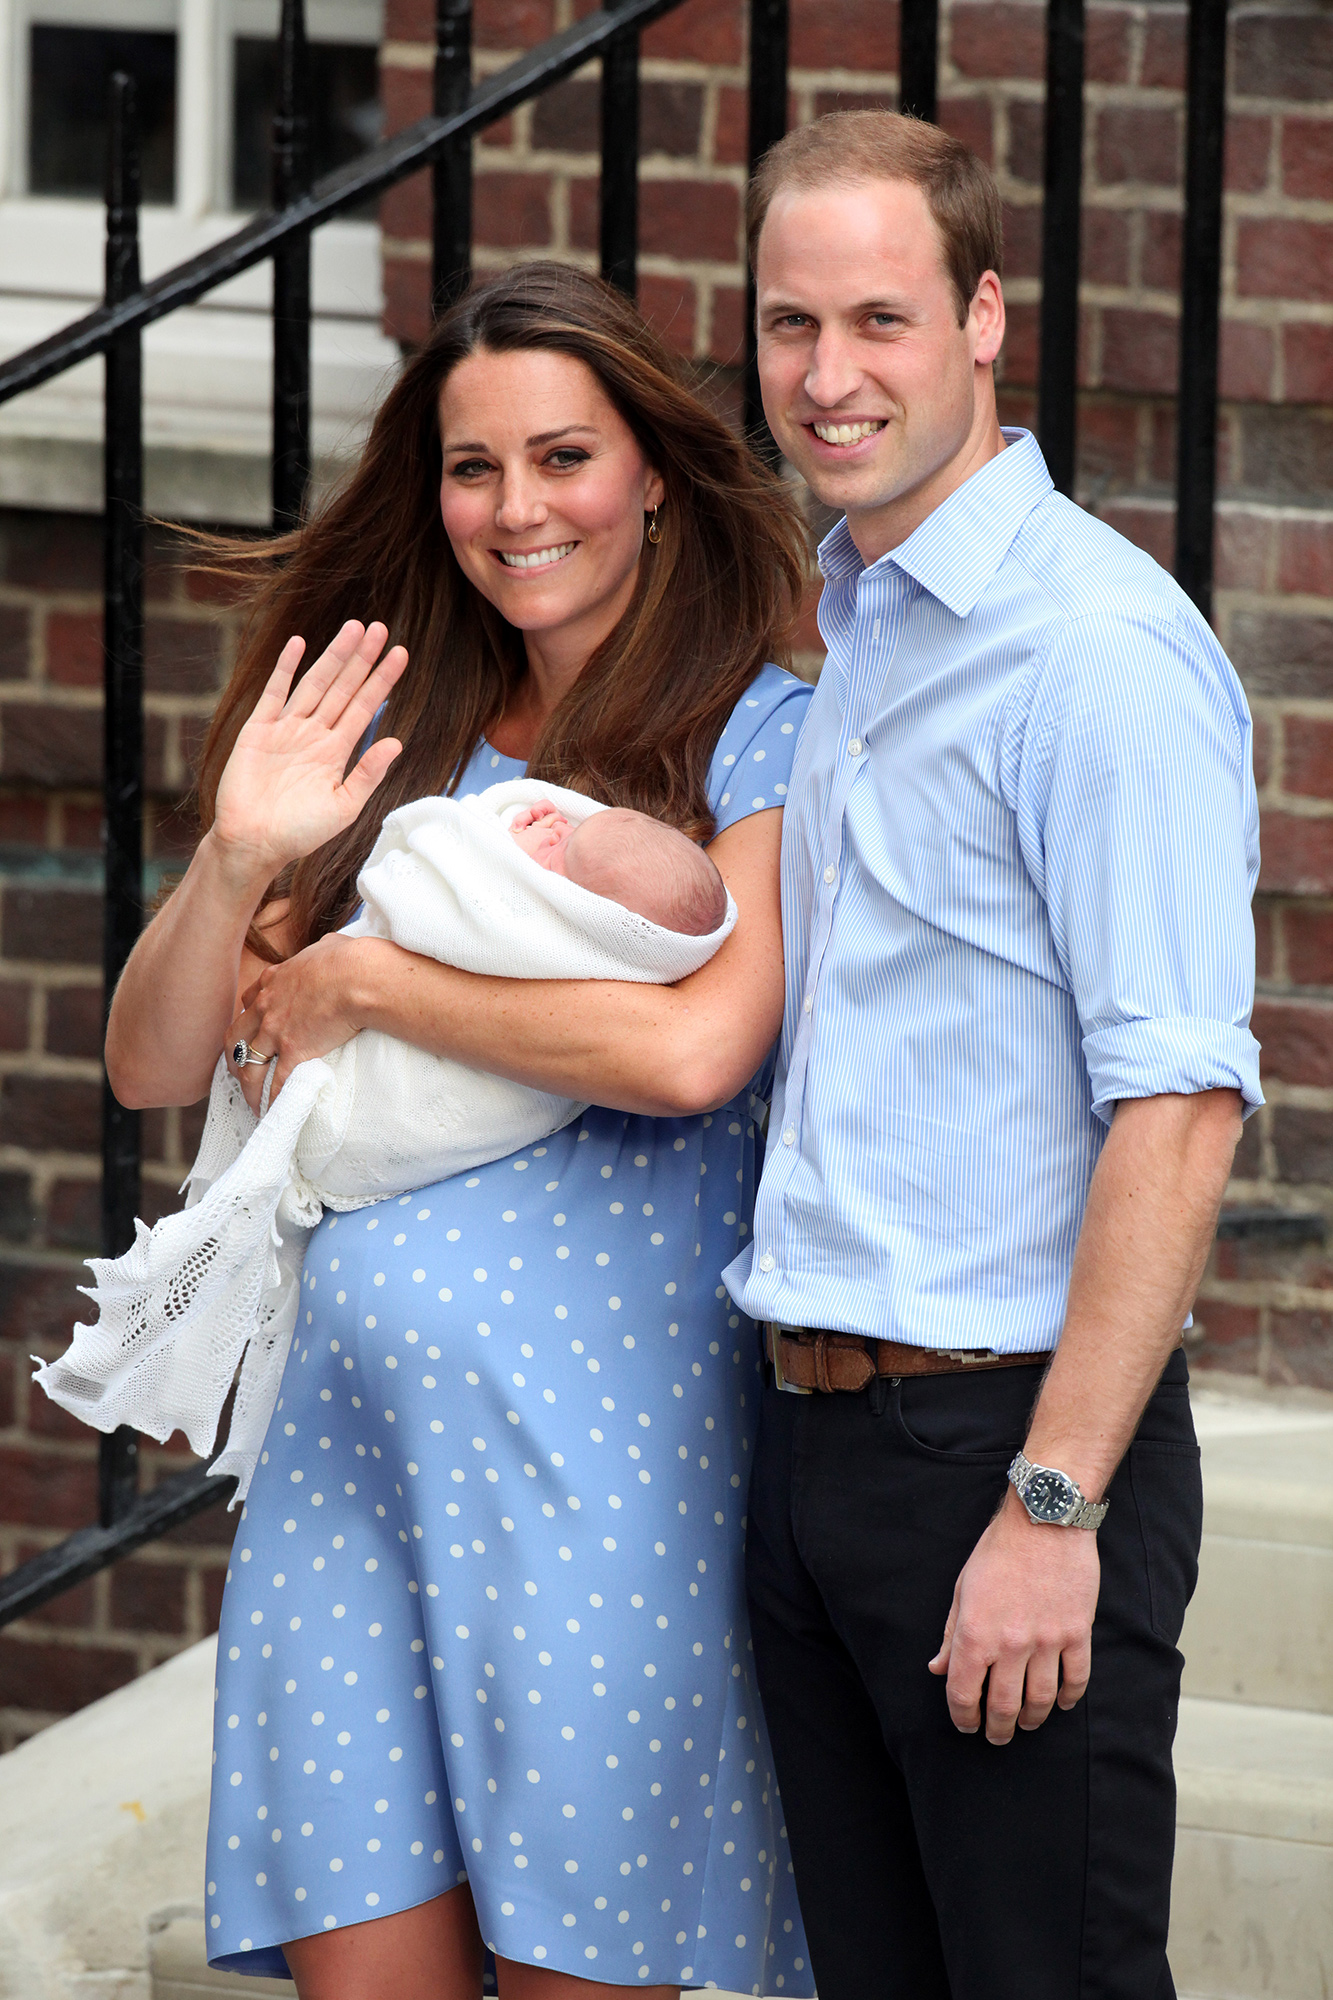 Kate Middleton Steps Out with New Royal Baby Just 7 Hours After Giving Birth: See the Photos! princess-kate-7